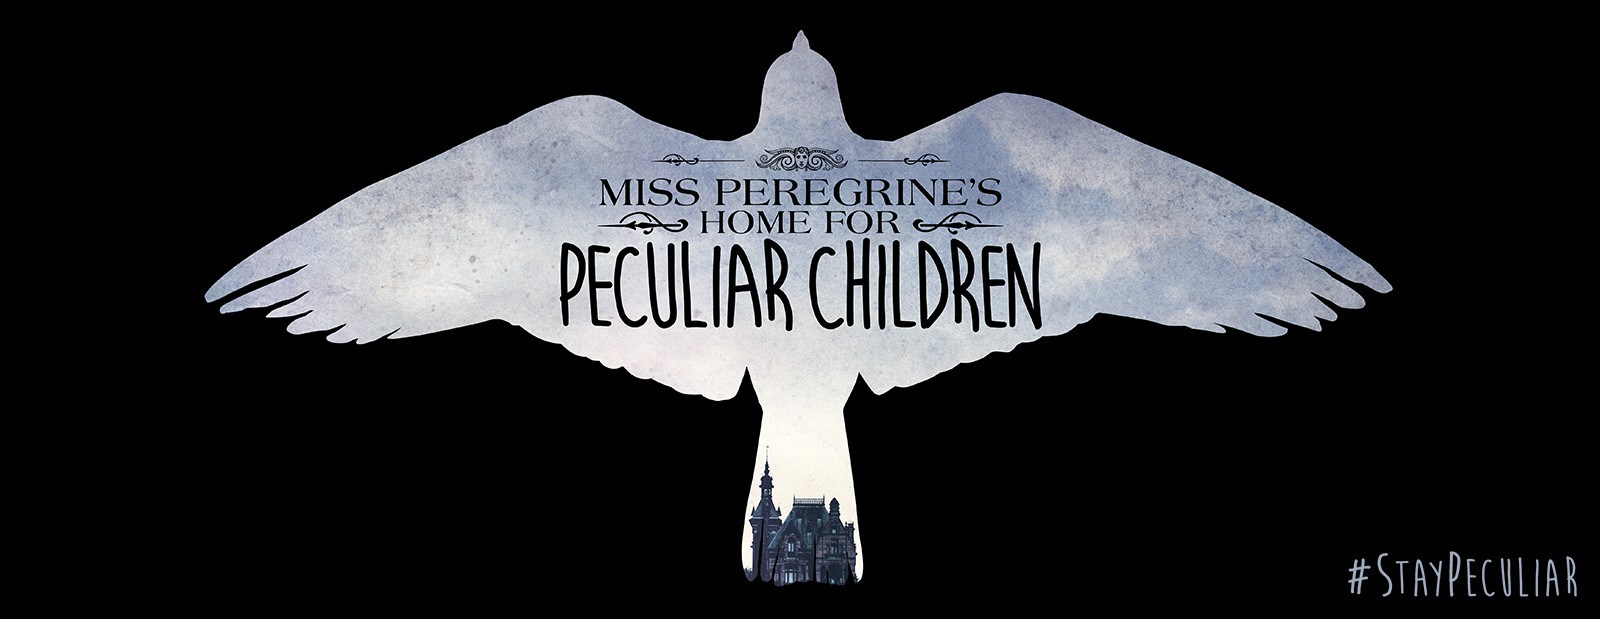 Miss Peregrines Home For Peculiar Children - New Miss Peregrine's Home for Peculiar Children Video Is on Loop